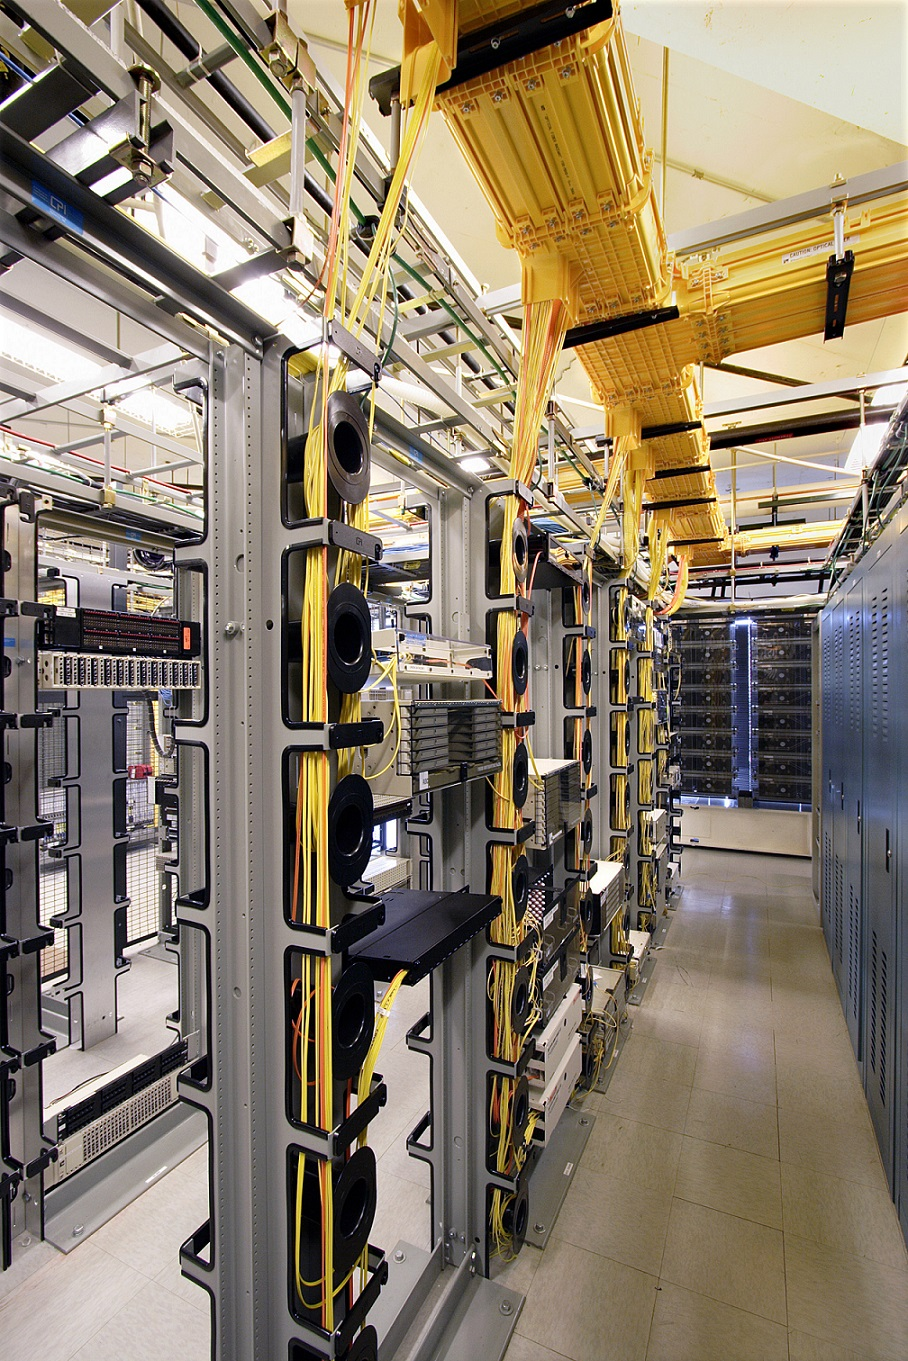 inside Digital Realty data center